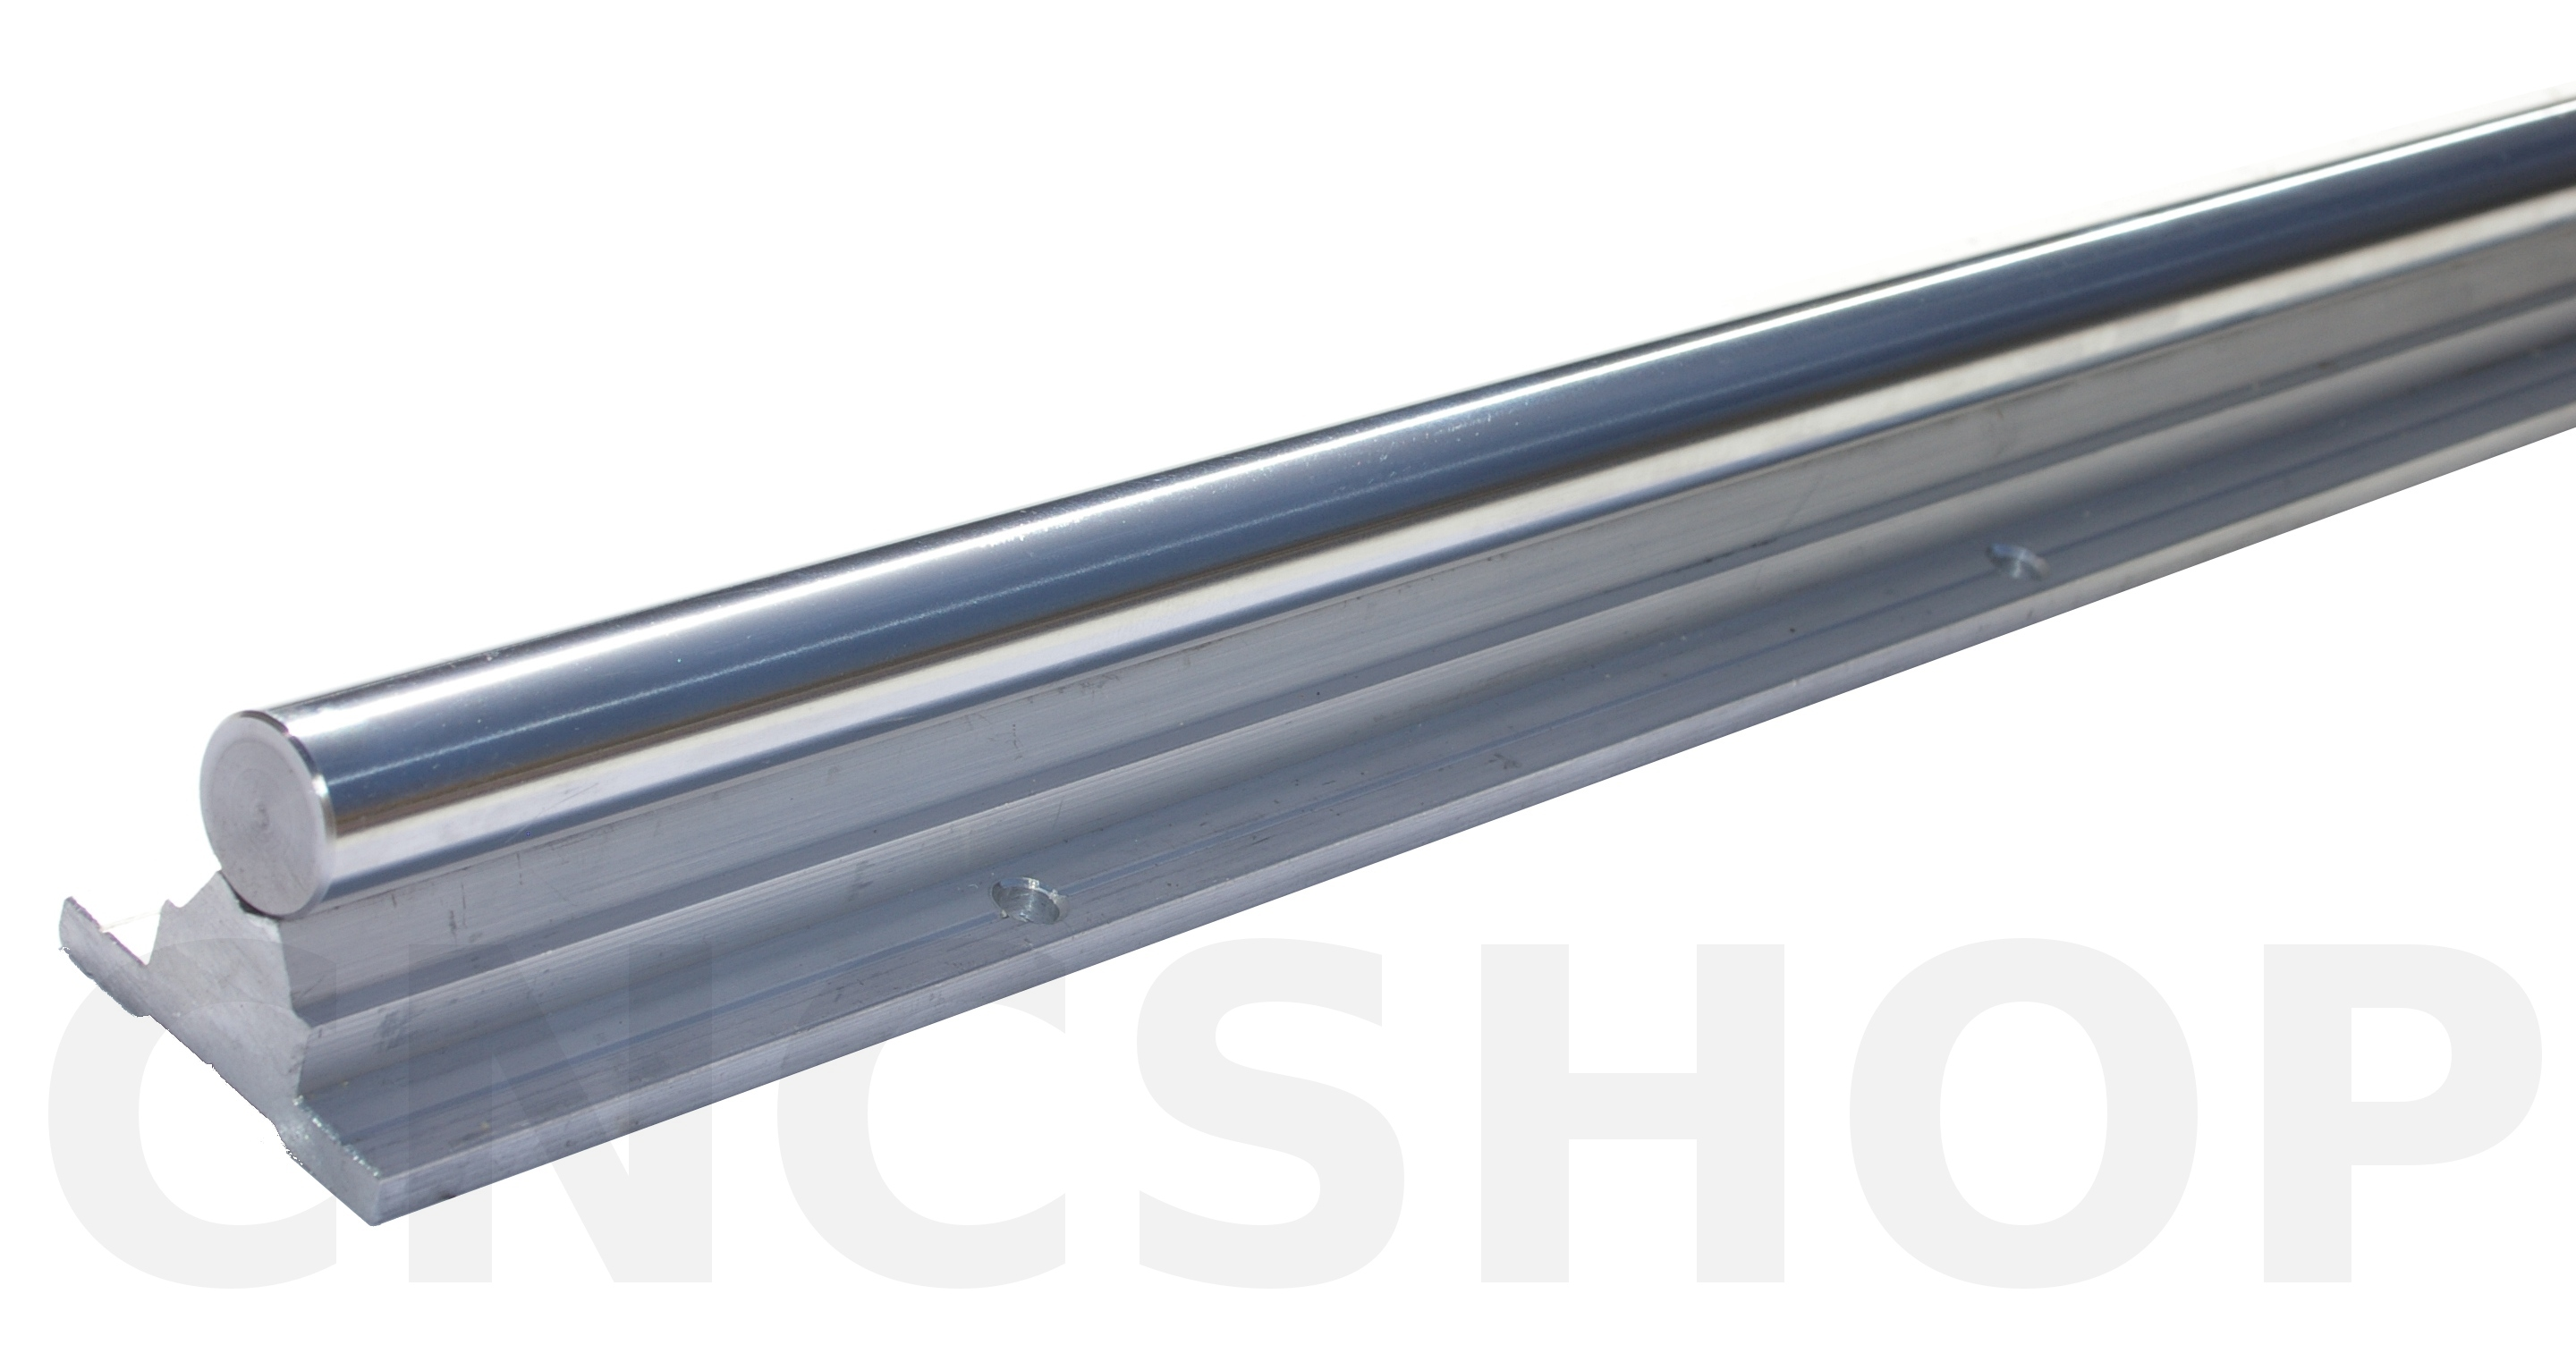 SBR16-300mm FULLY SUPPORTED LINEAR RAIL